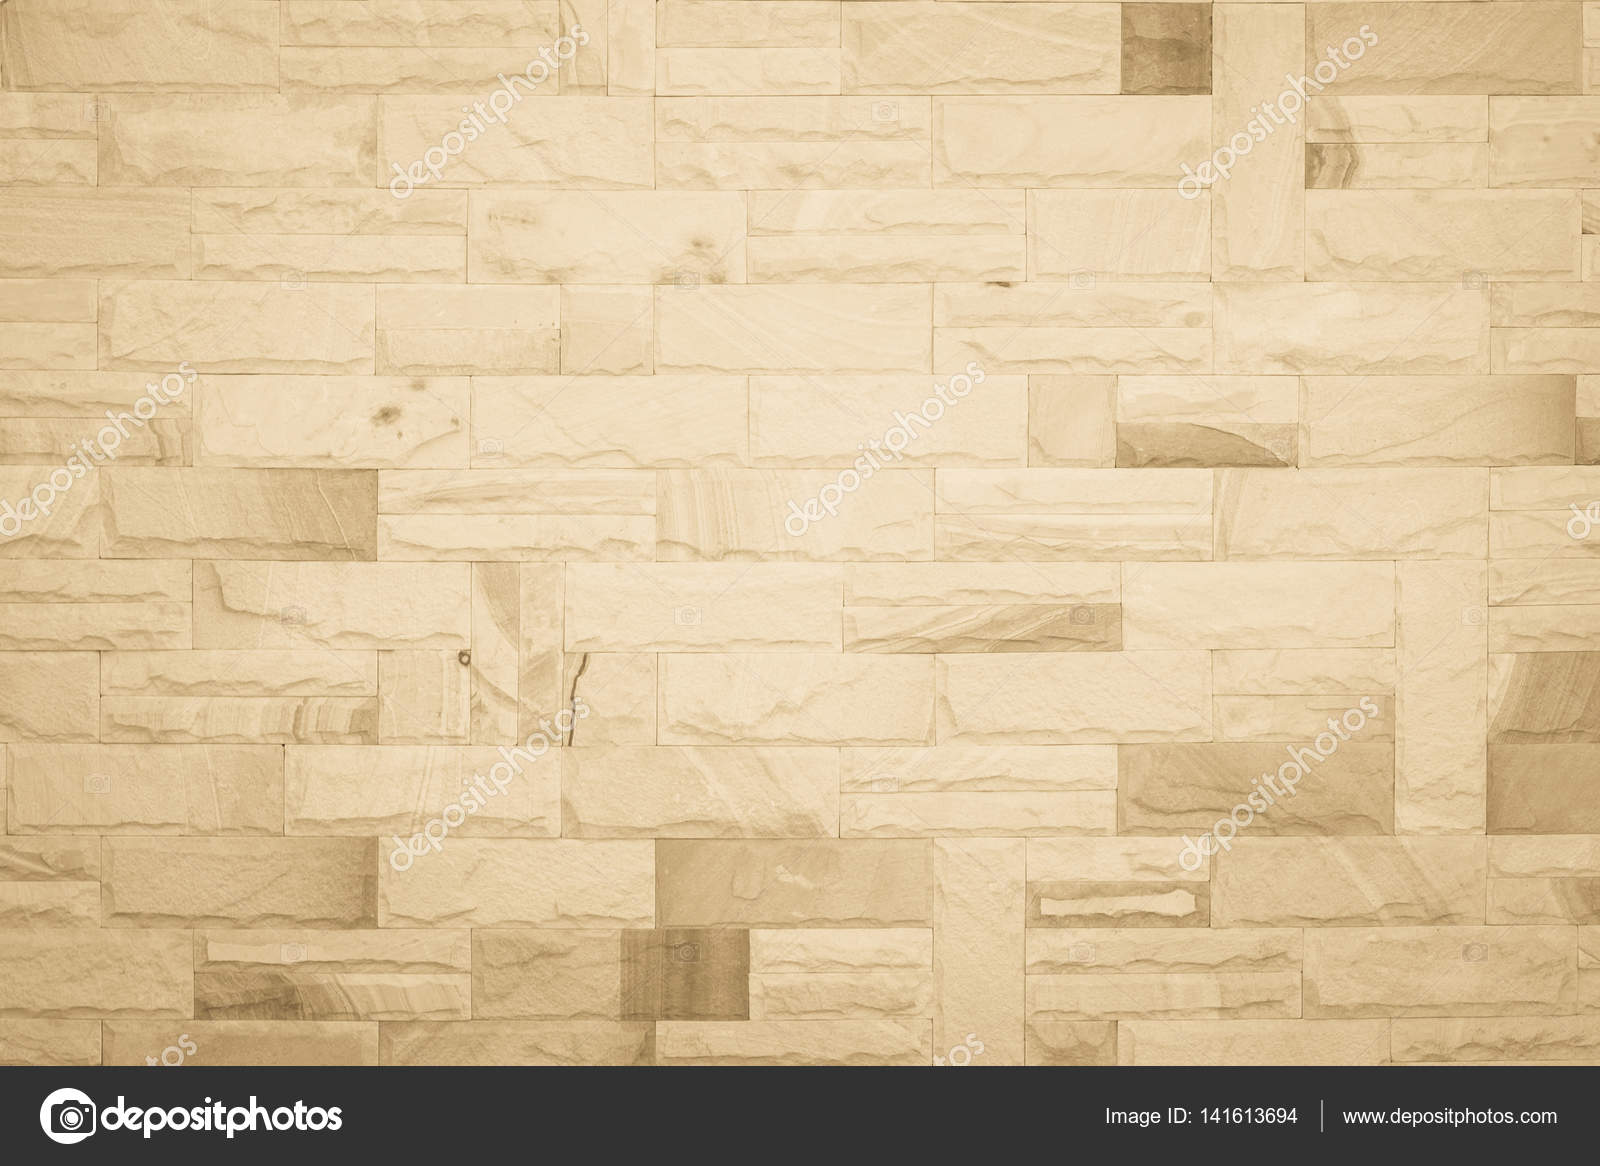 Black and white brick wall texture background .Abstract weathered ...